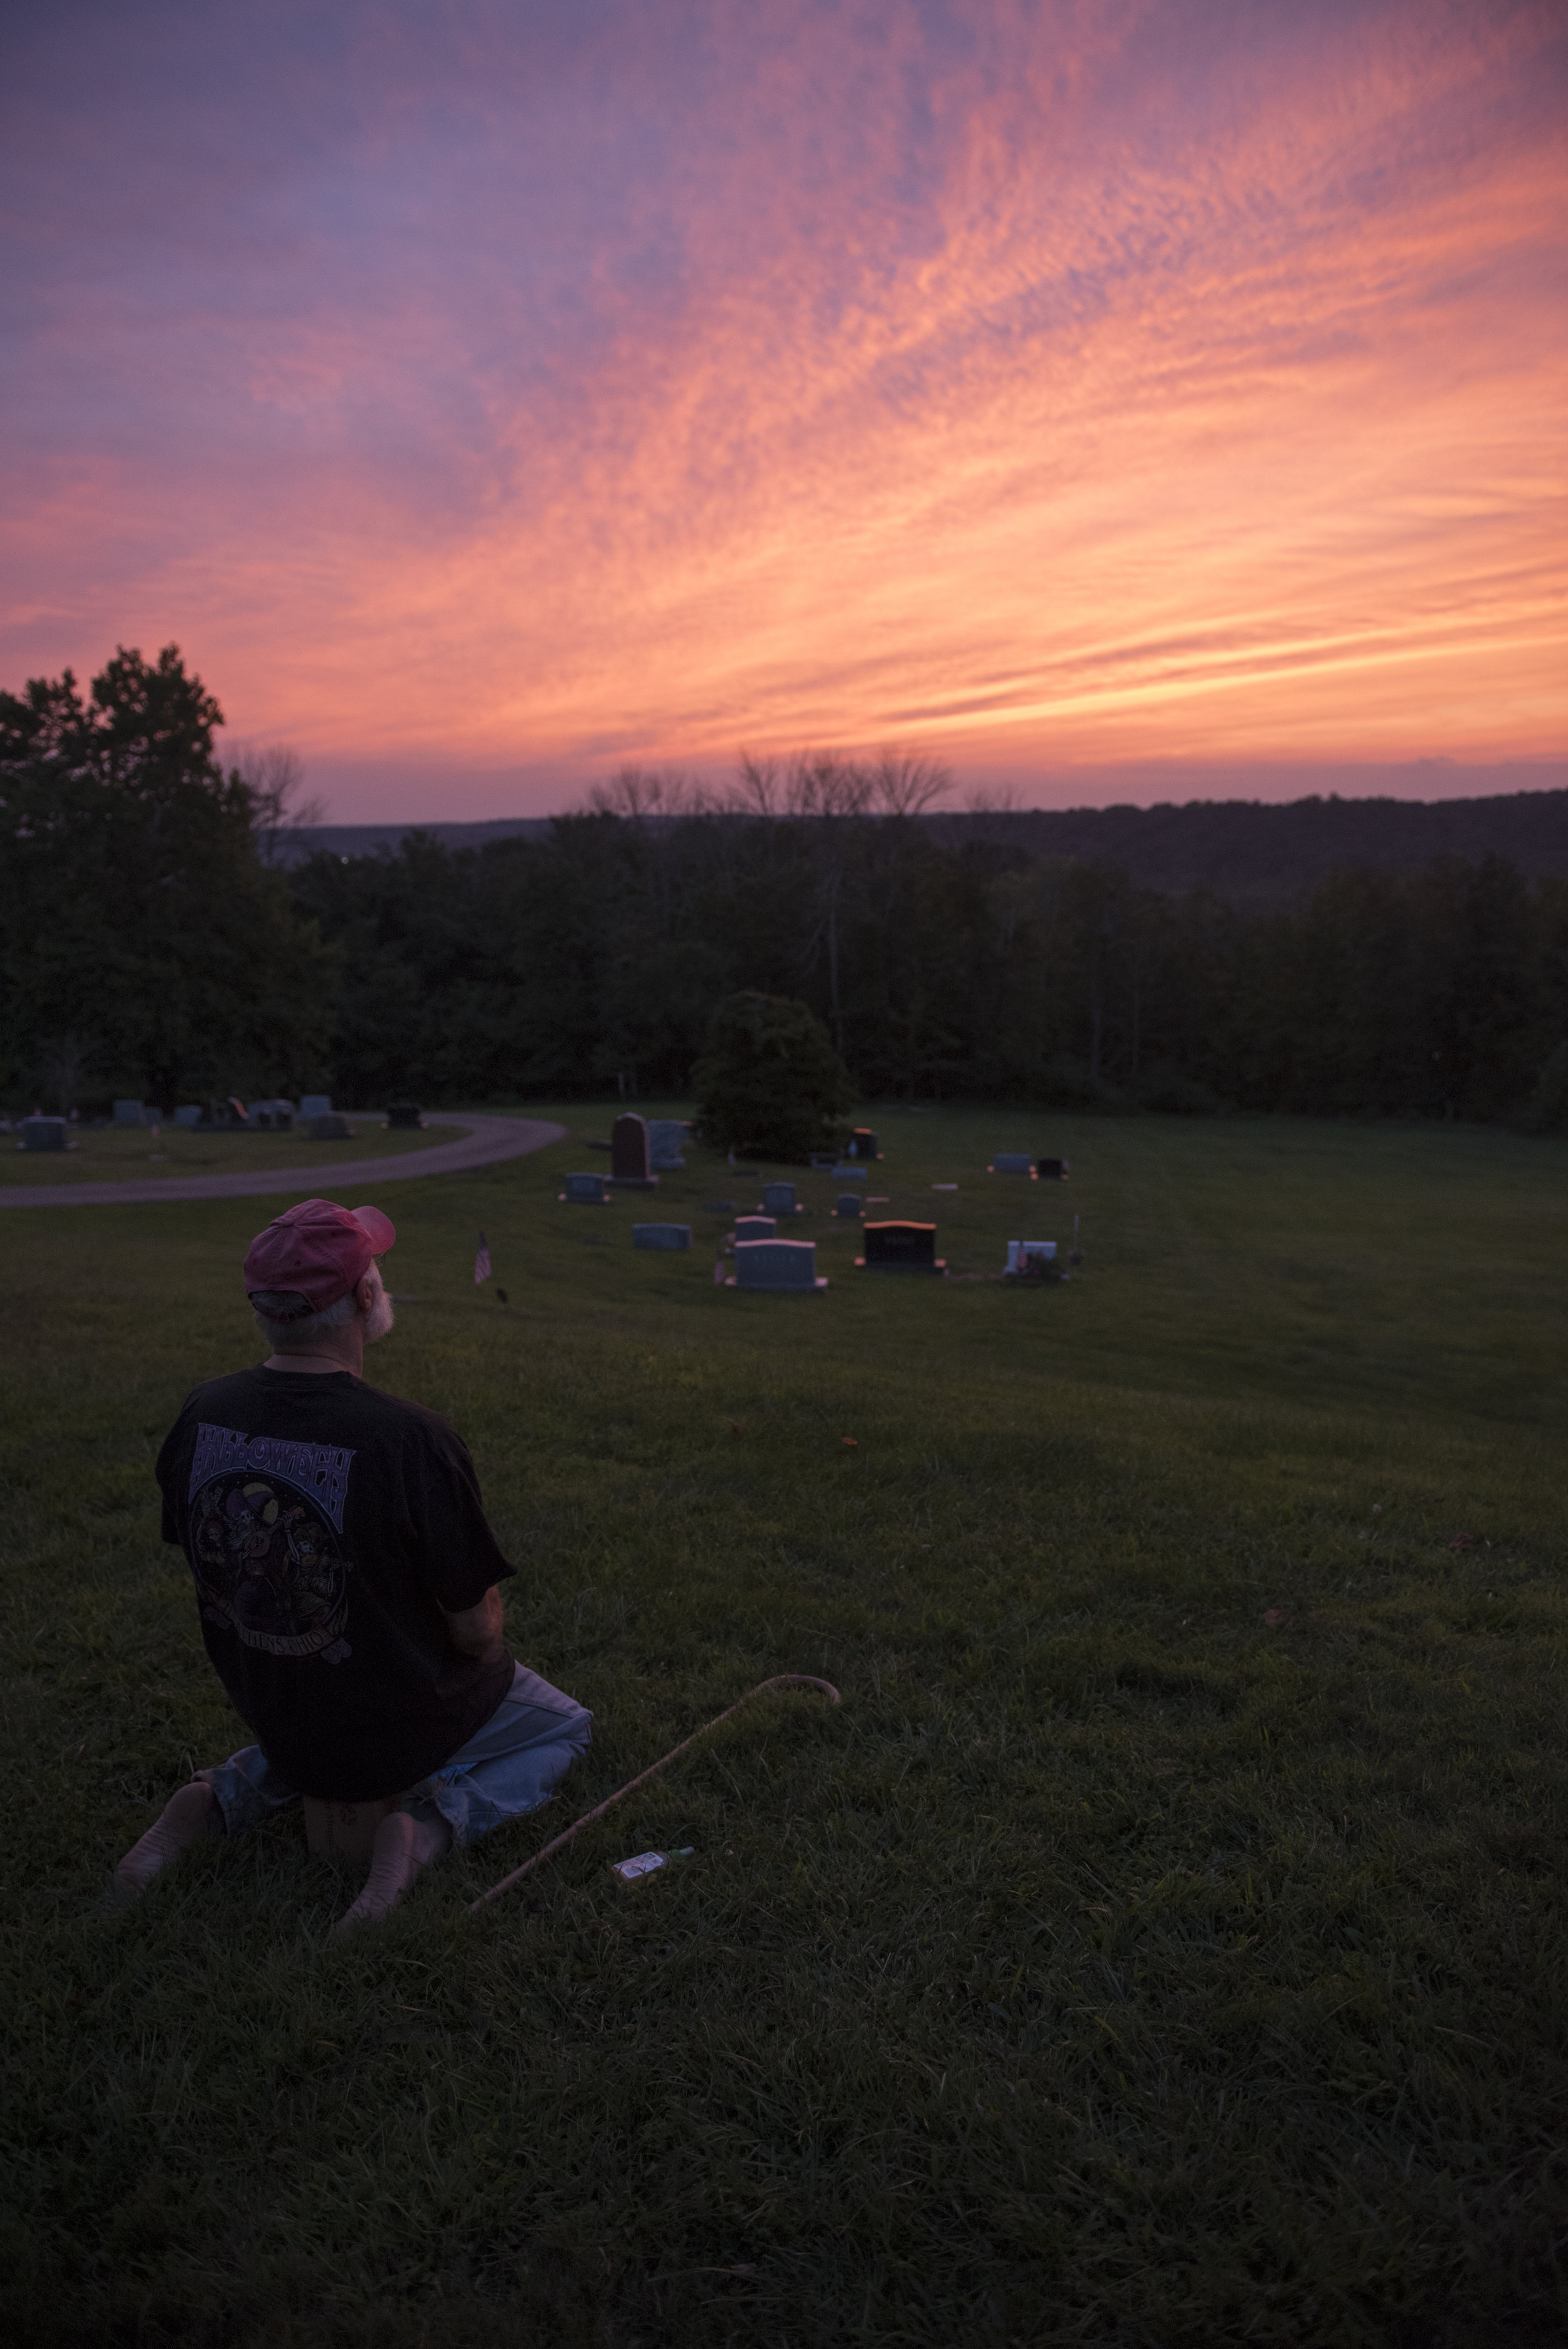 Patrick McGee enjoys the sunset in a cemetery in Athens, Ohio on Aug. 30, 2017. McGee sits in a Japanese meditate pose and takes the time to think and reflect.